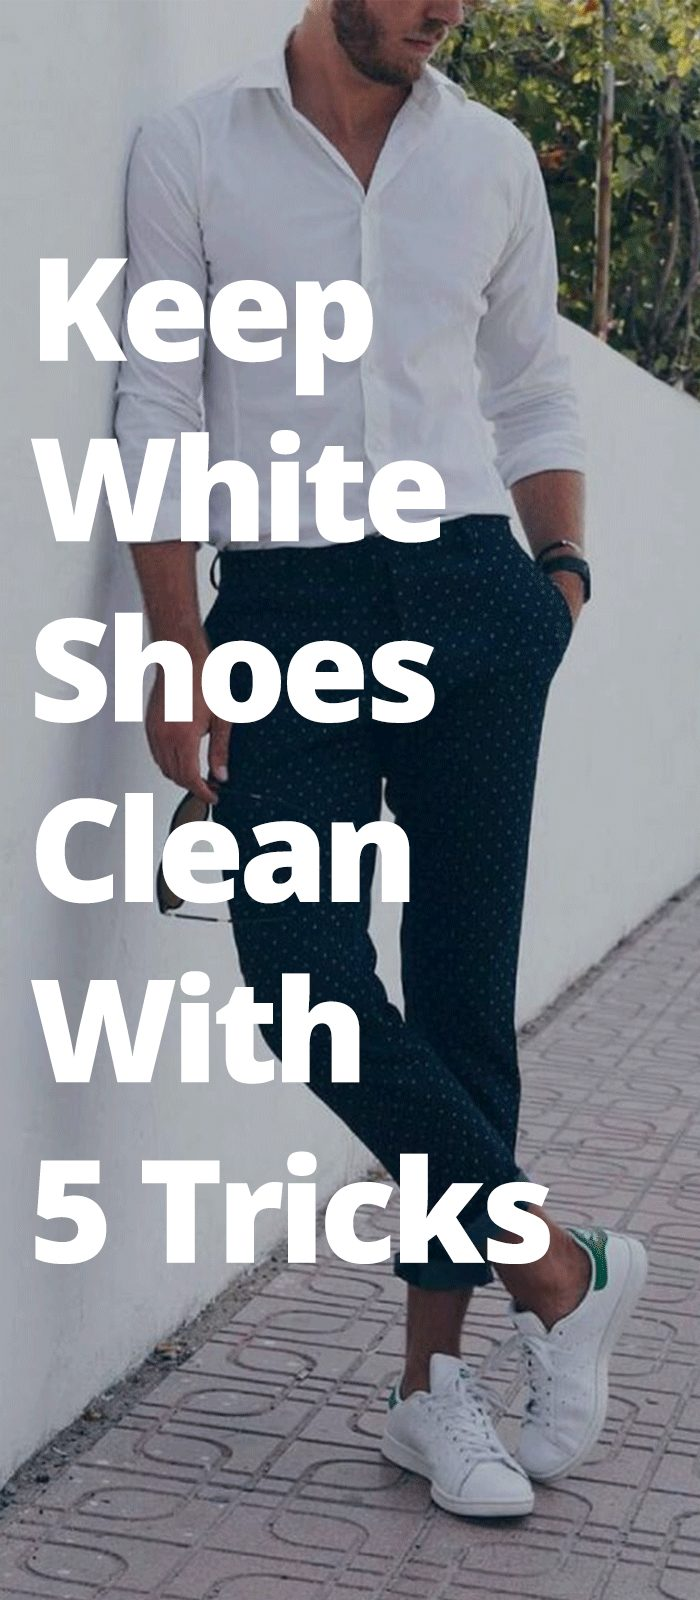 Keep White Shoes Clean With 5 Tricks